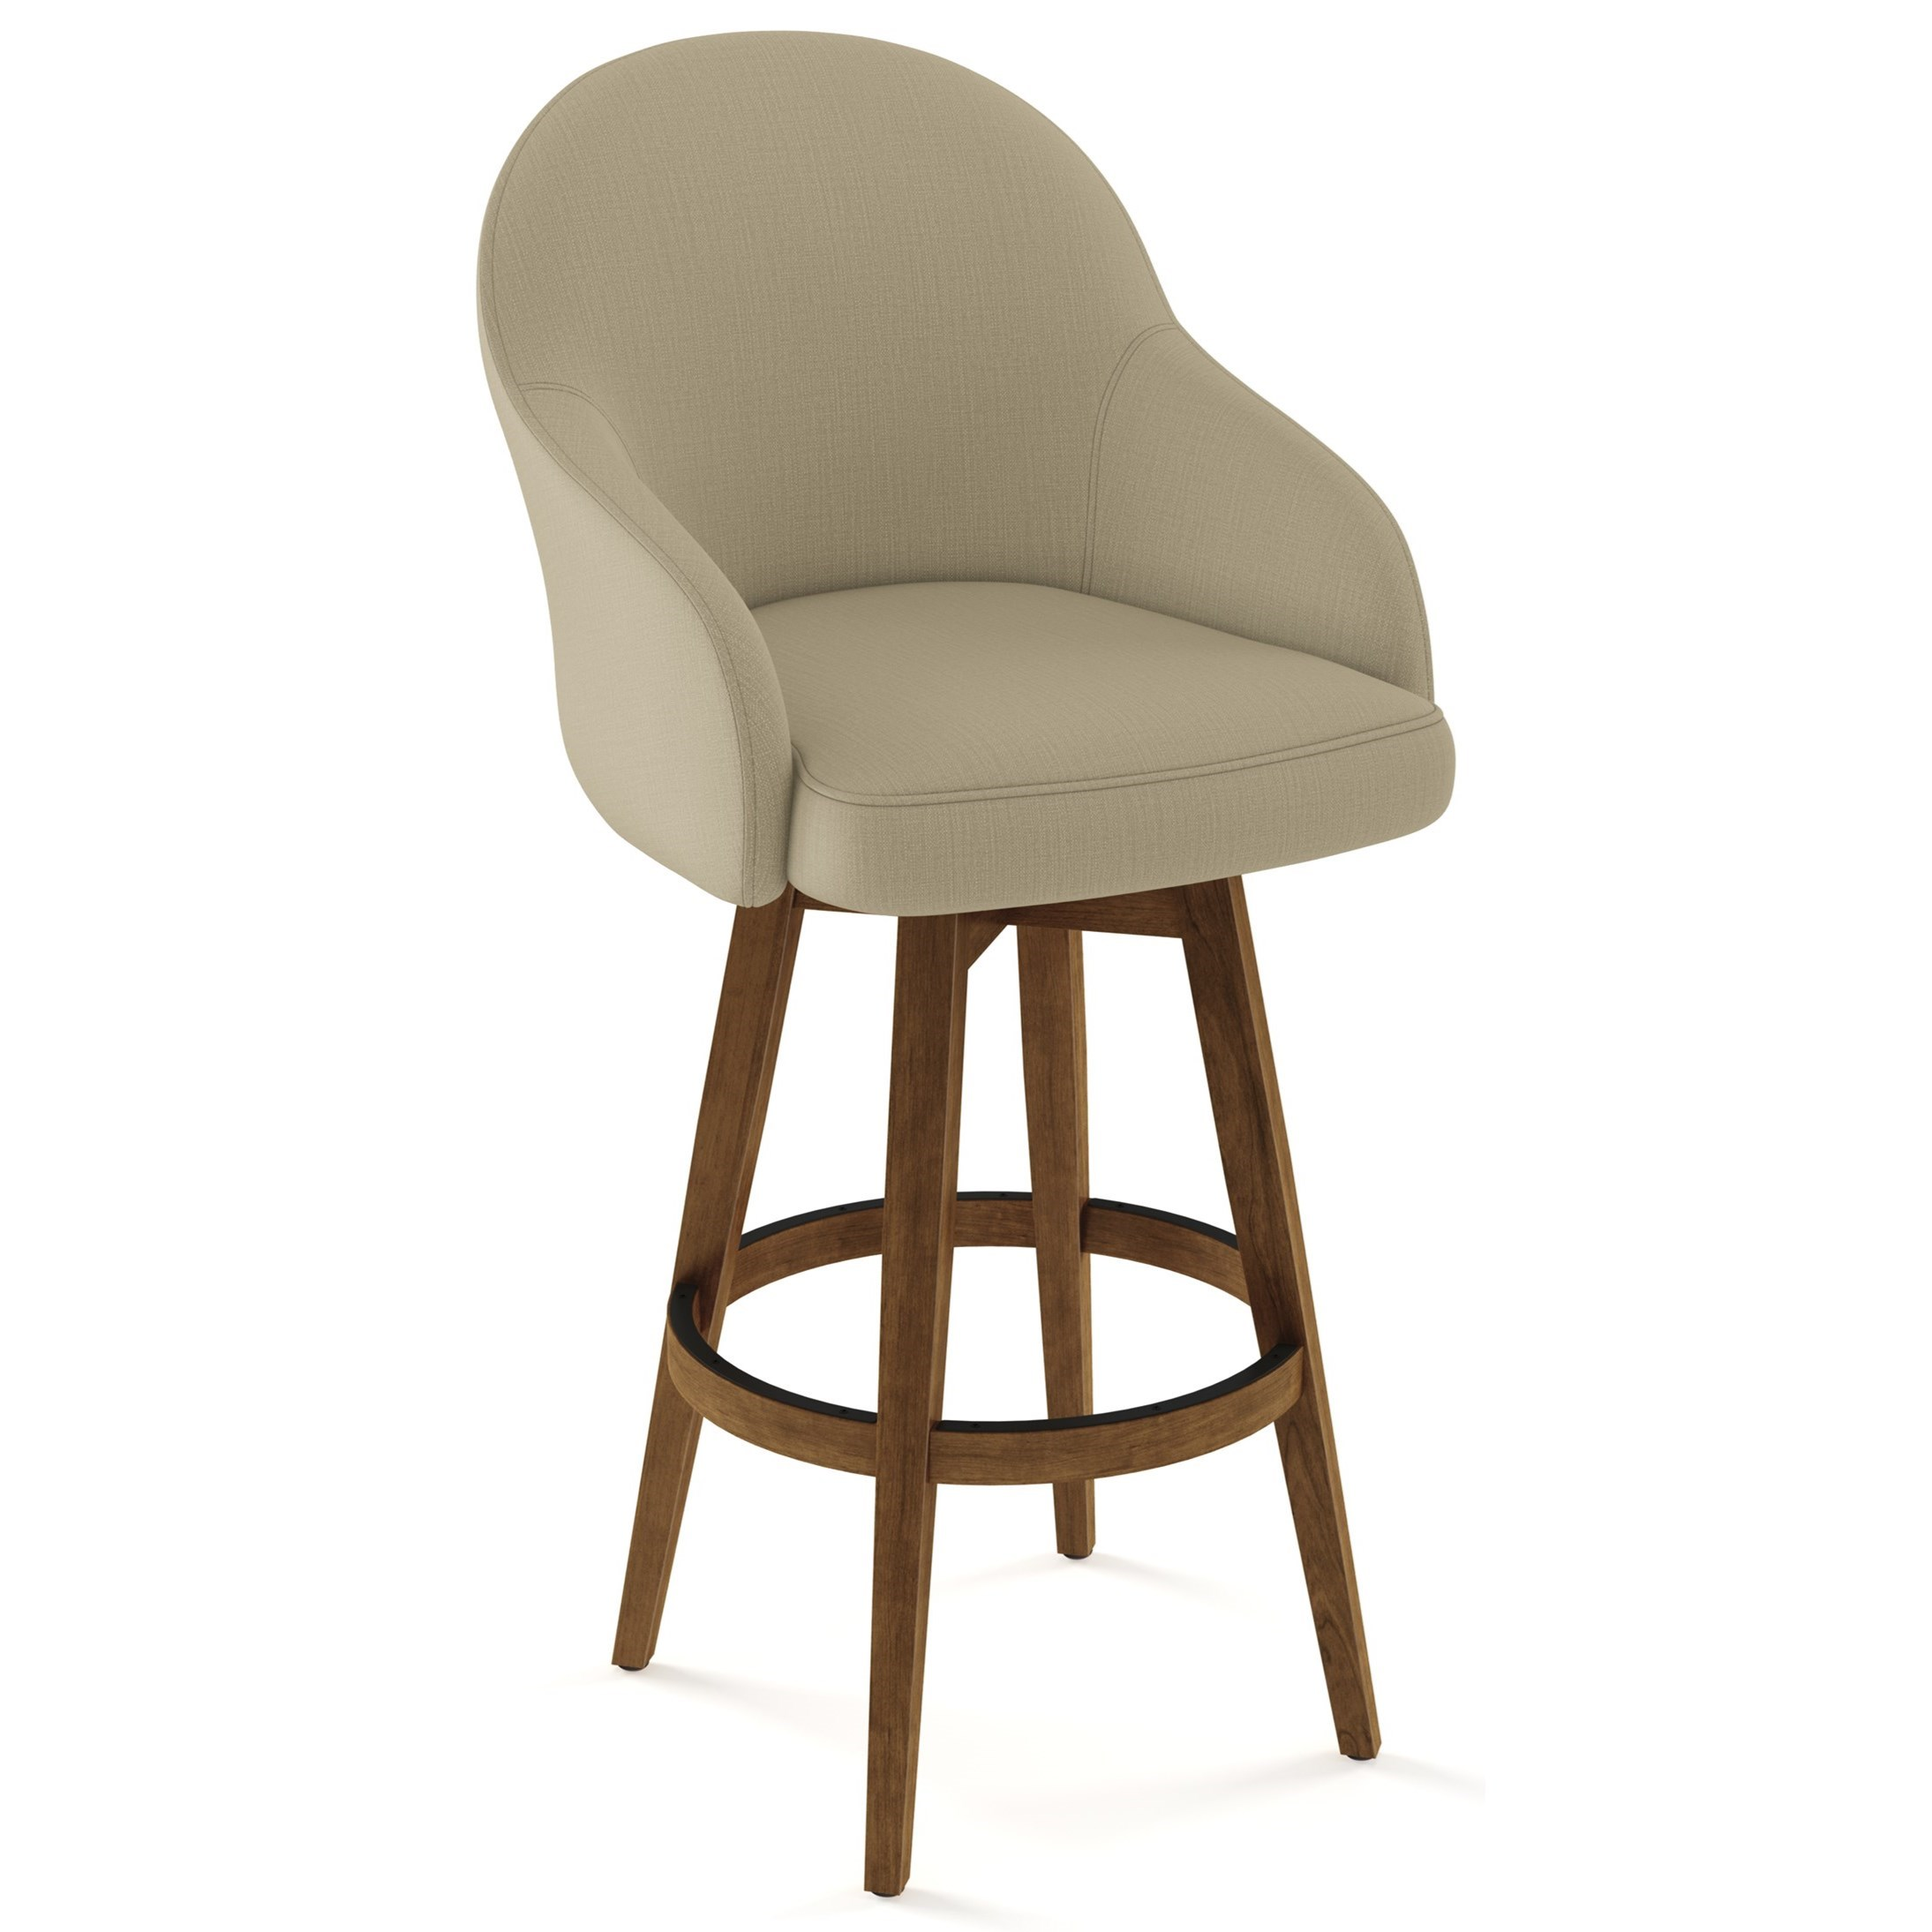 Amisco Farmhouse Customizable 30 Collin Swivel Bar Stool With Upholstered Seat And Back Belfort Furniture Bar Stools